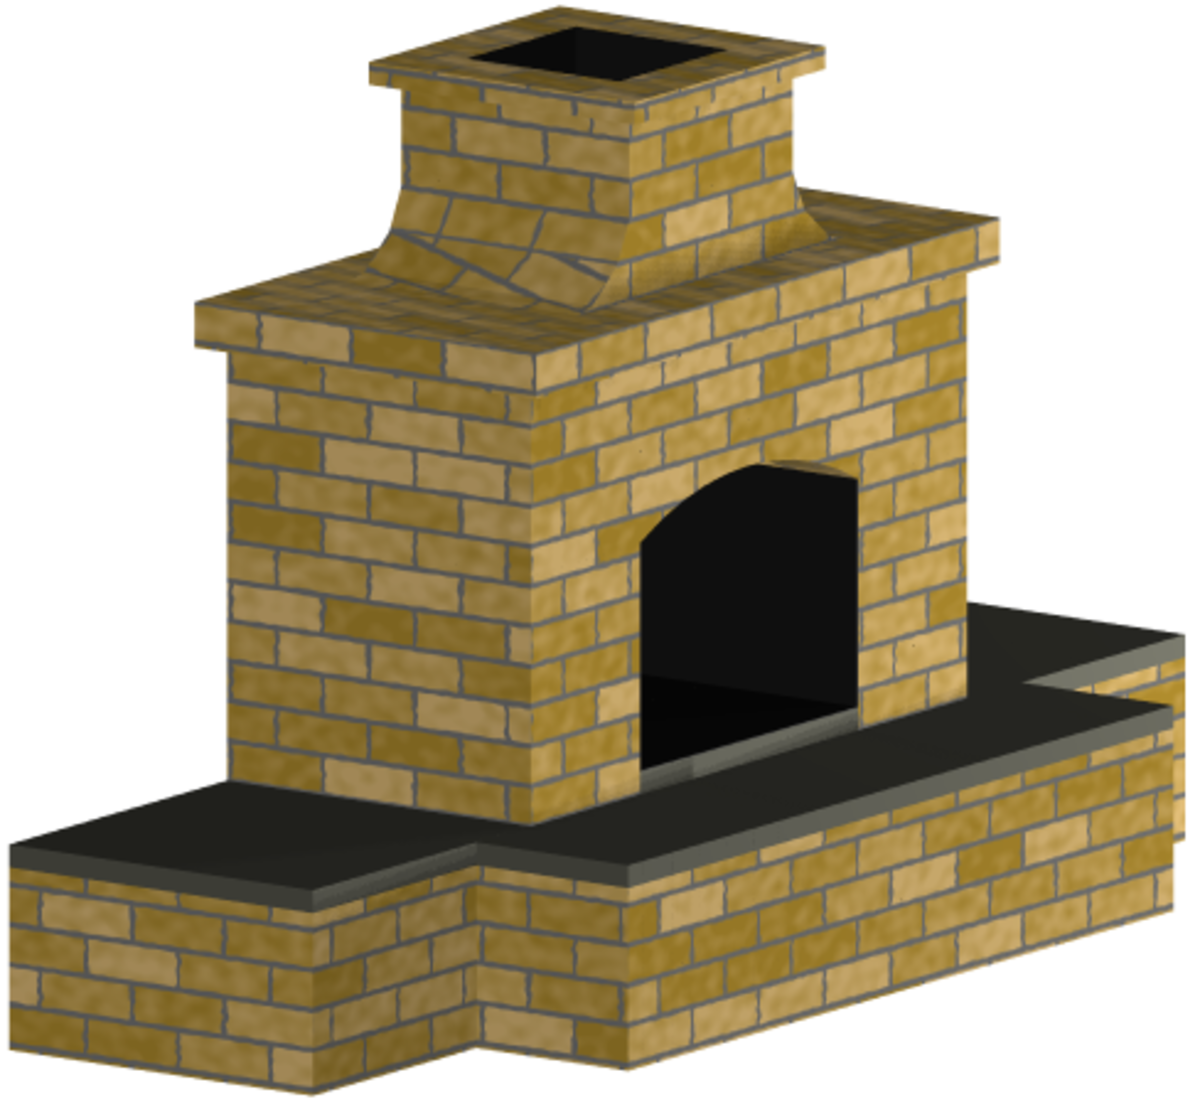 Chimney Construction Materials : Outdoor fireplace plans and building materials